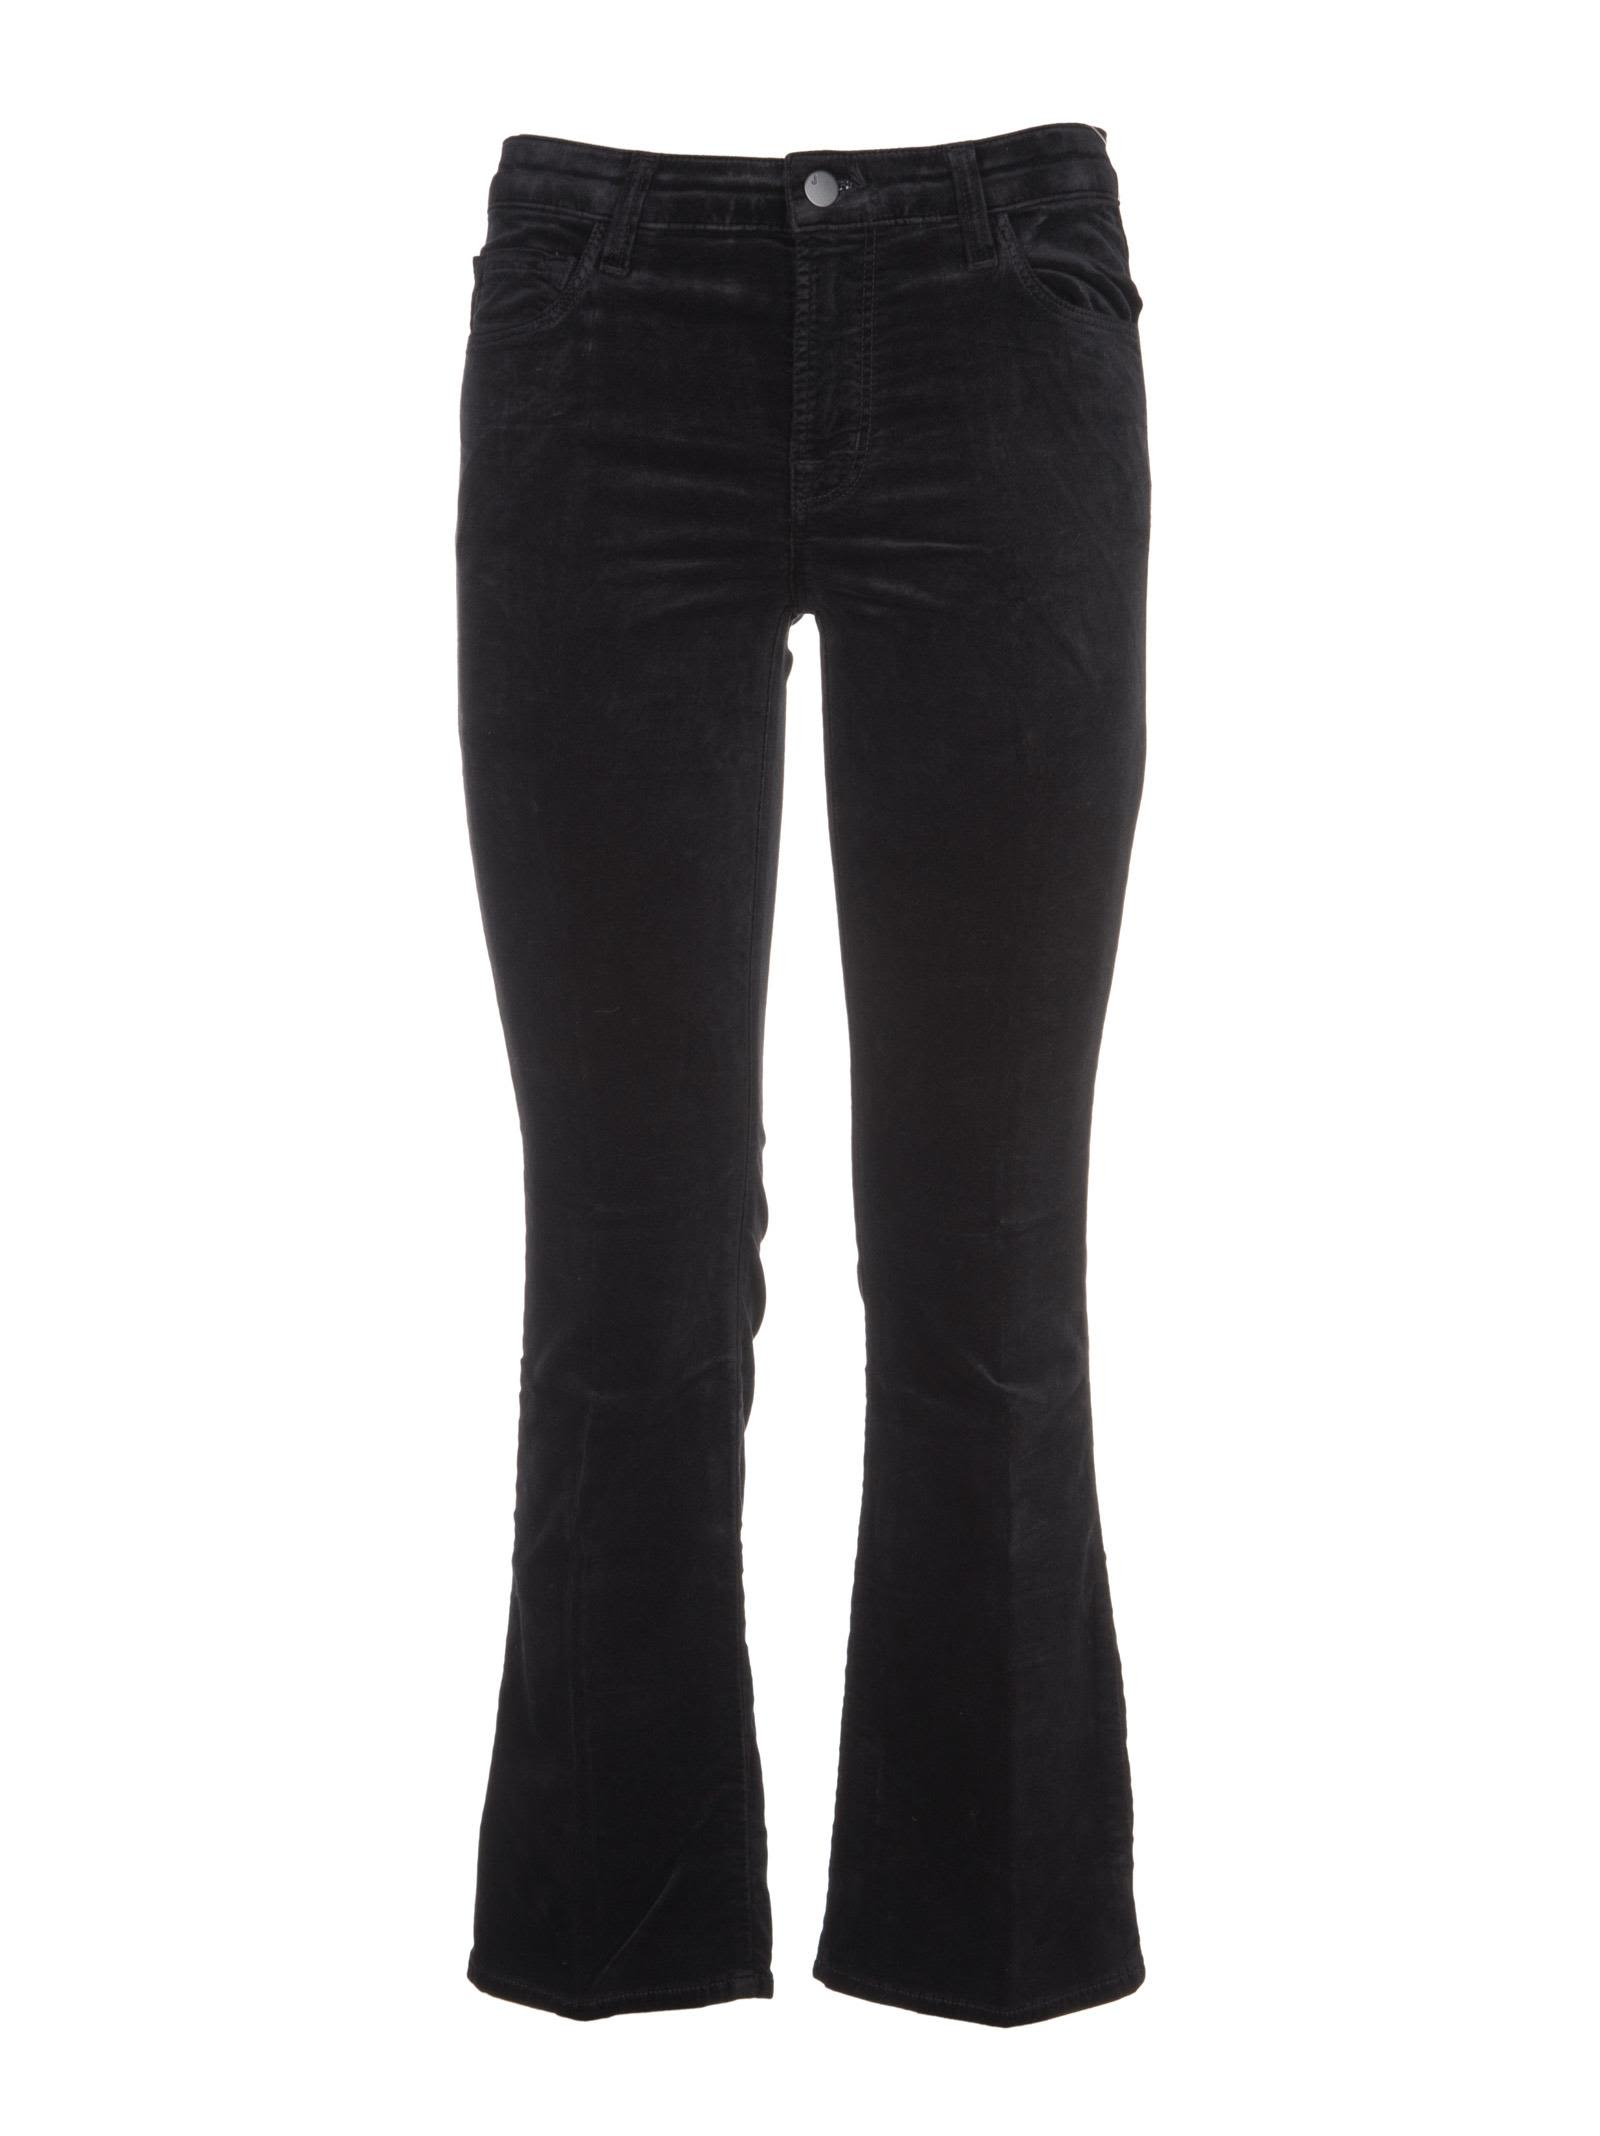 J Brand Fitted Flare Leg Jeans